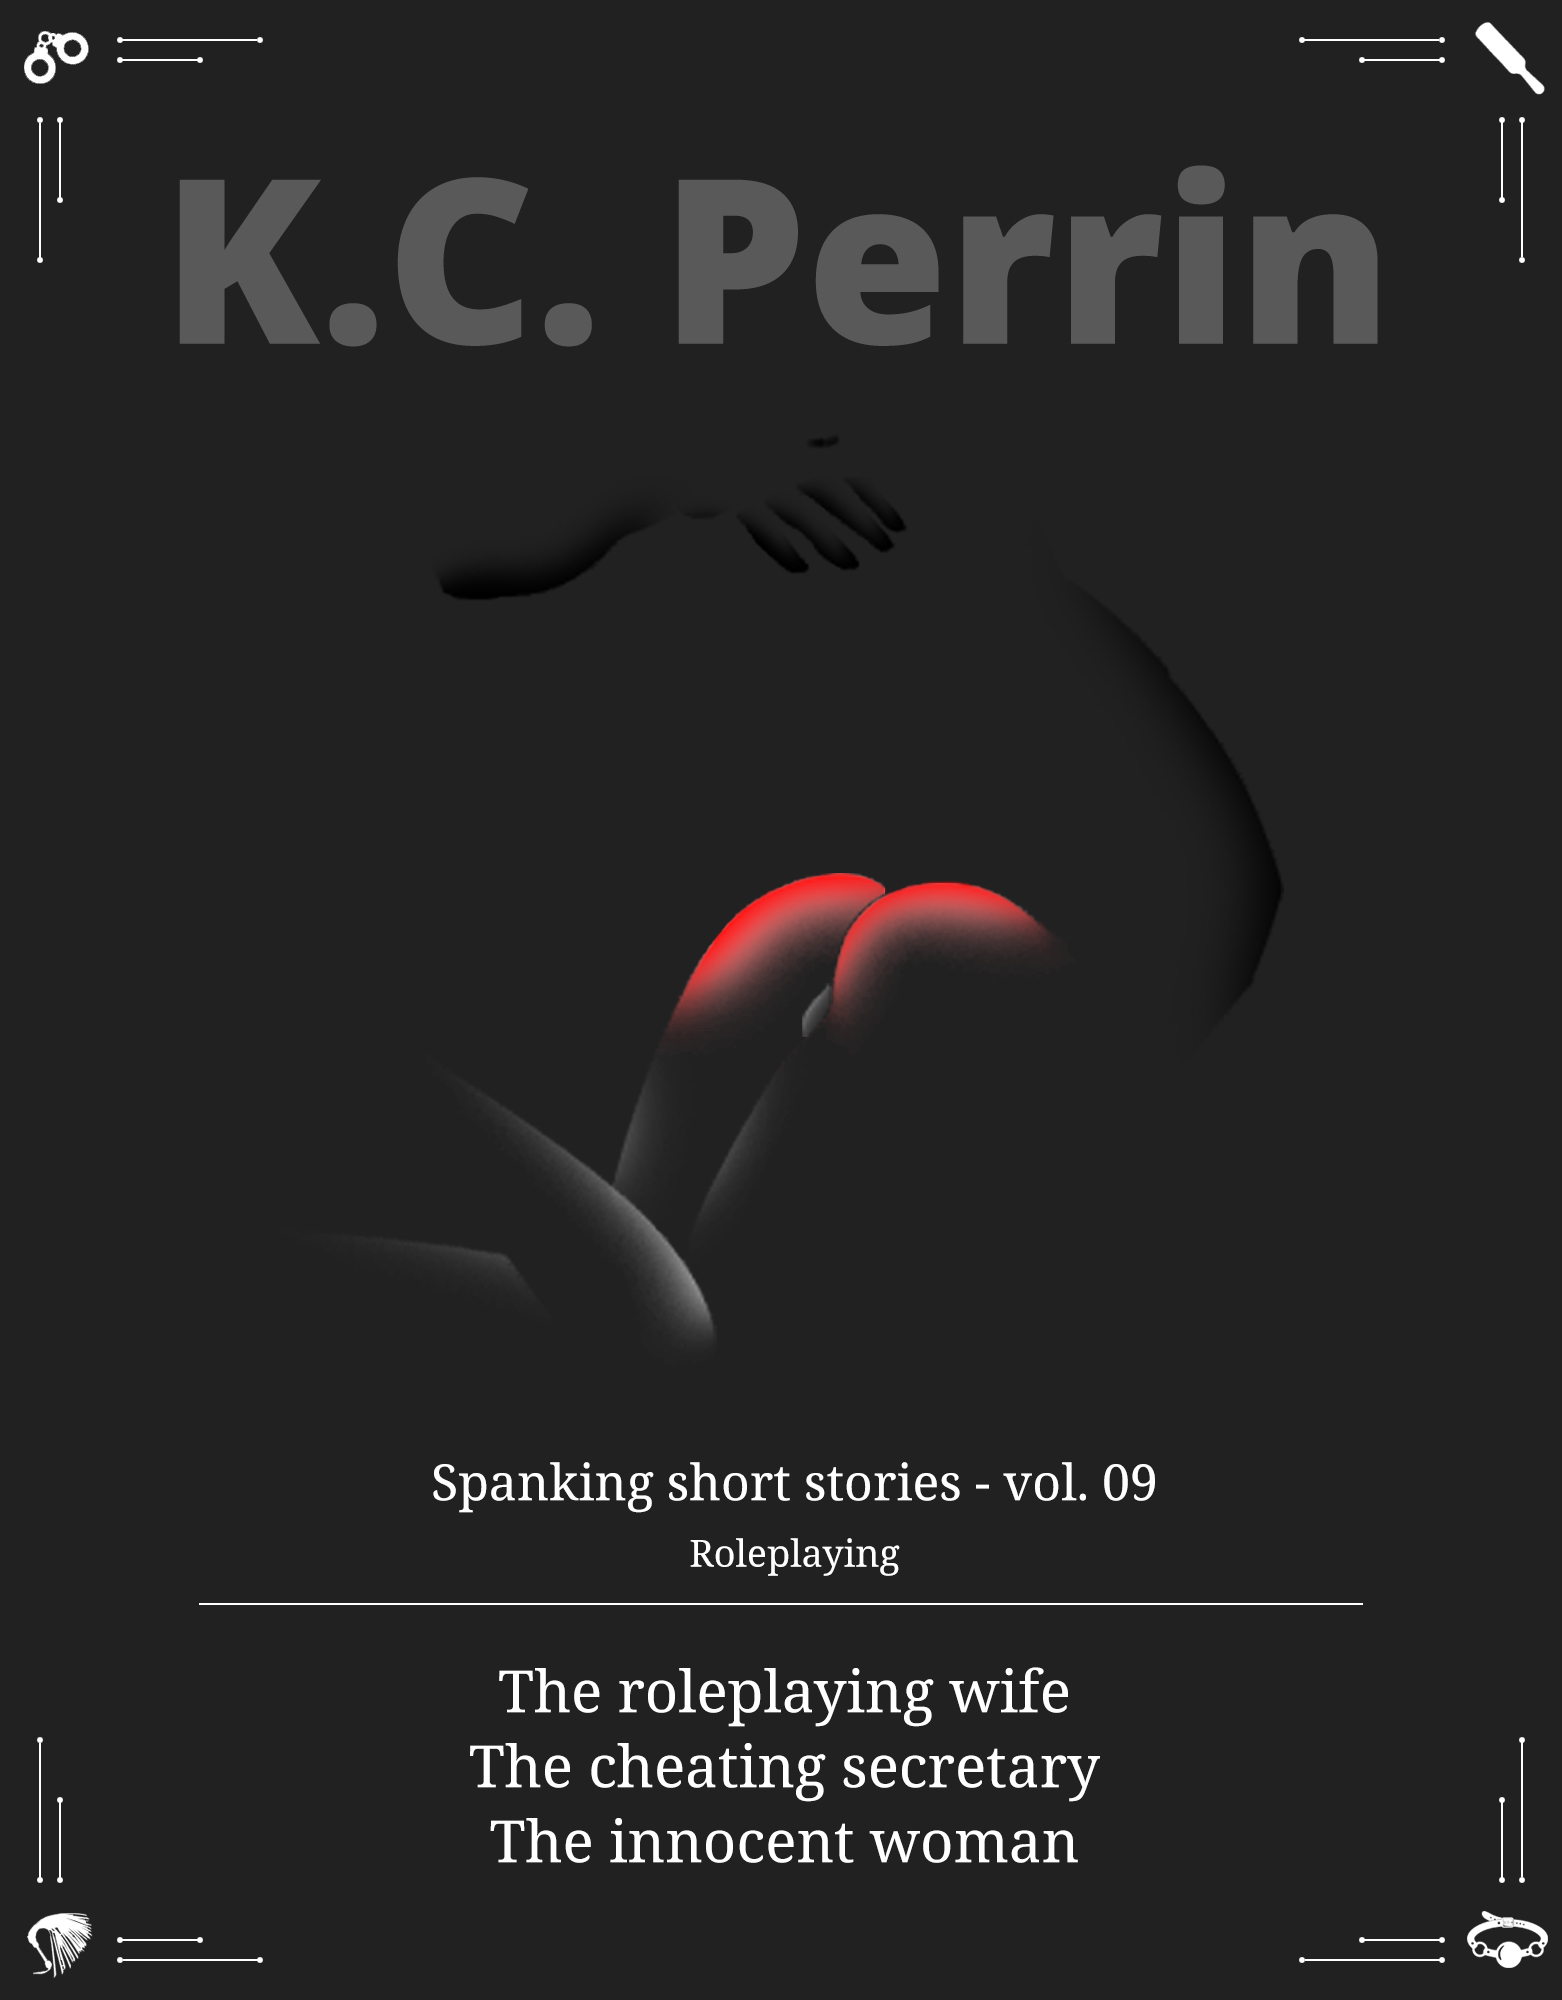 Spanking short stories- vol. 9